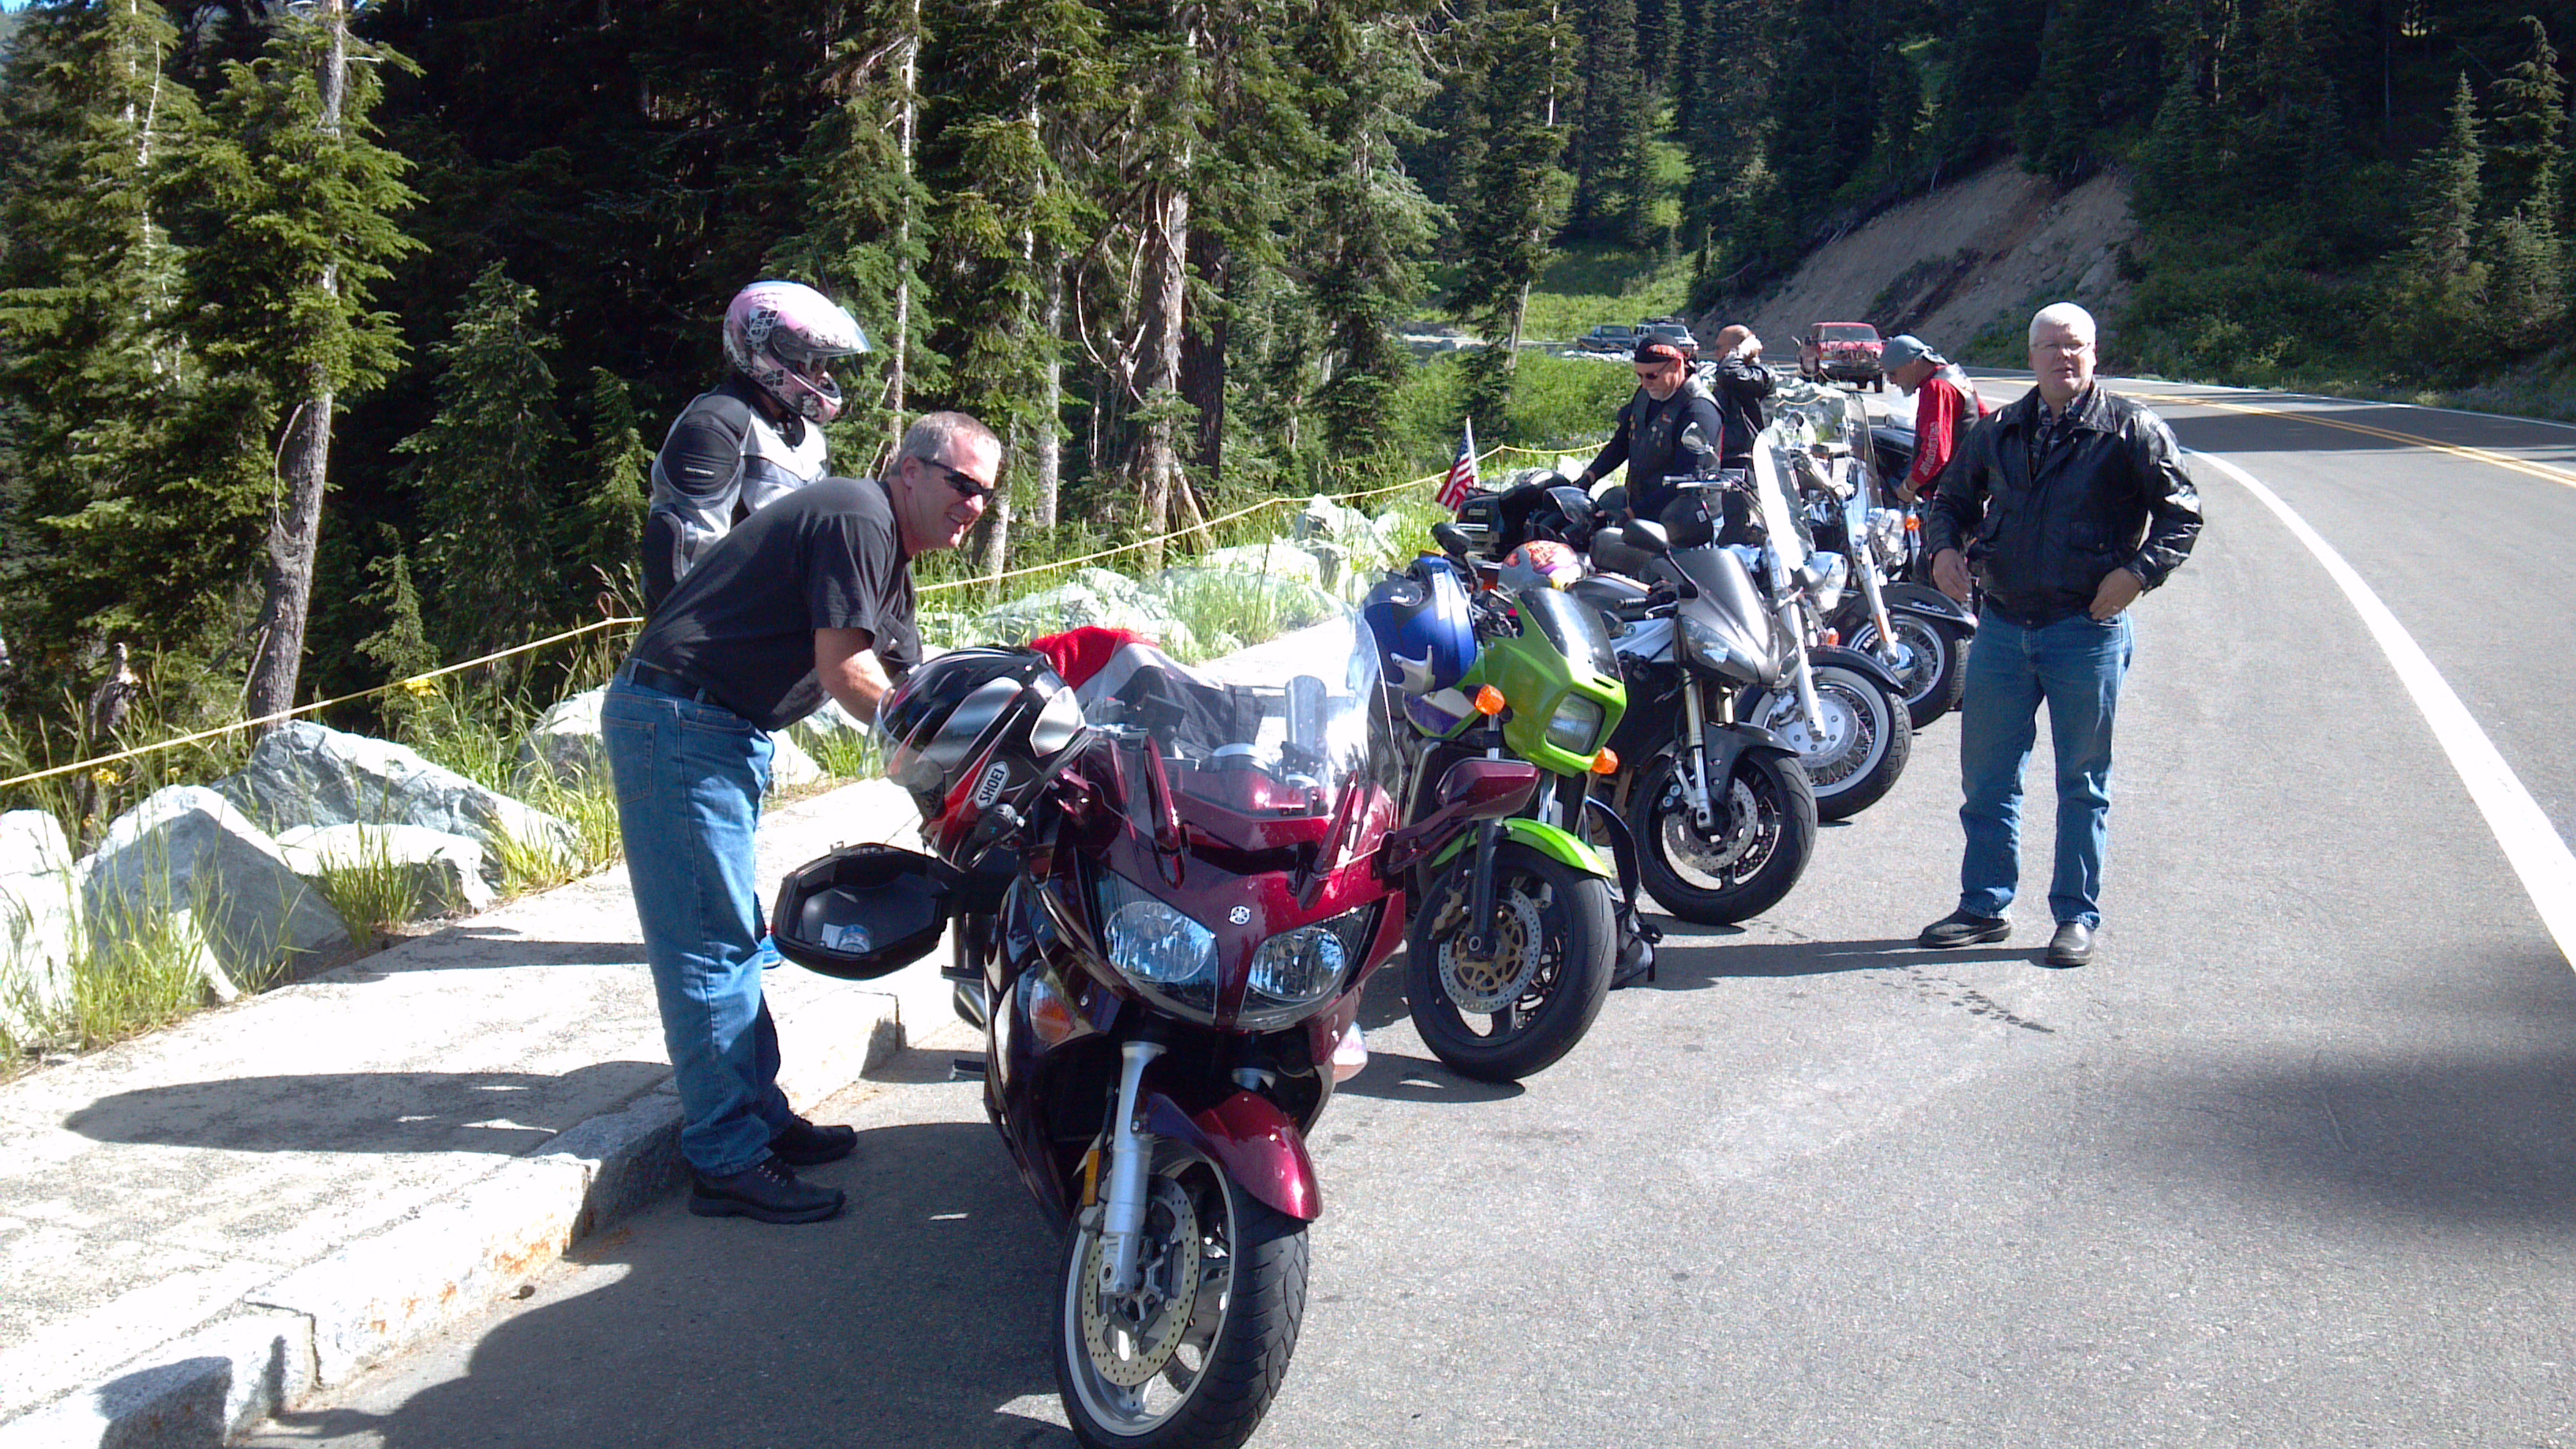 Motorcycles parked at the summit of Chinook Pass, WA